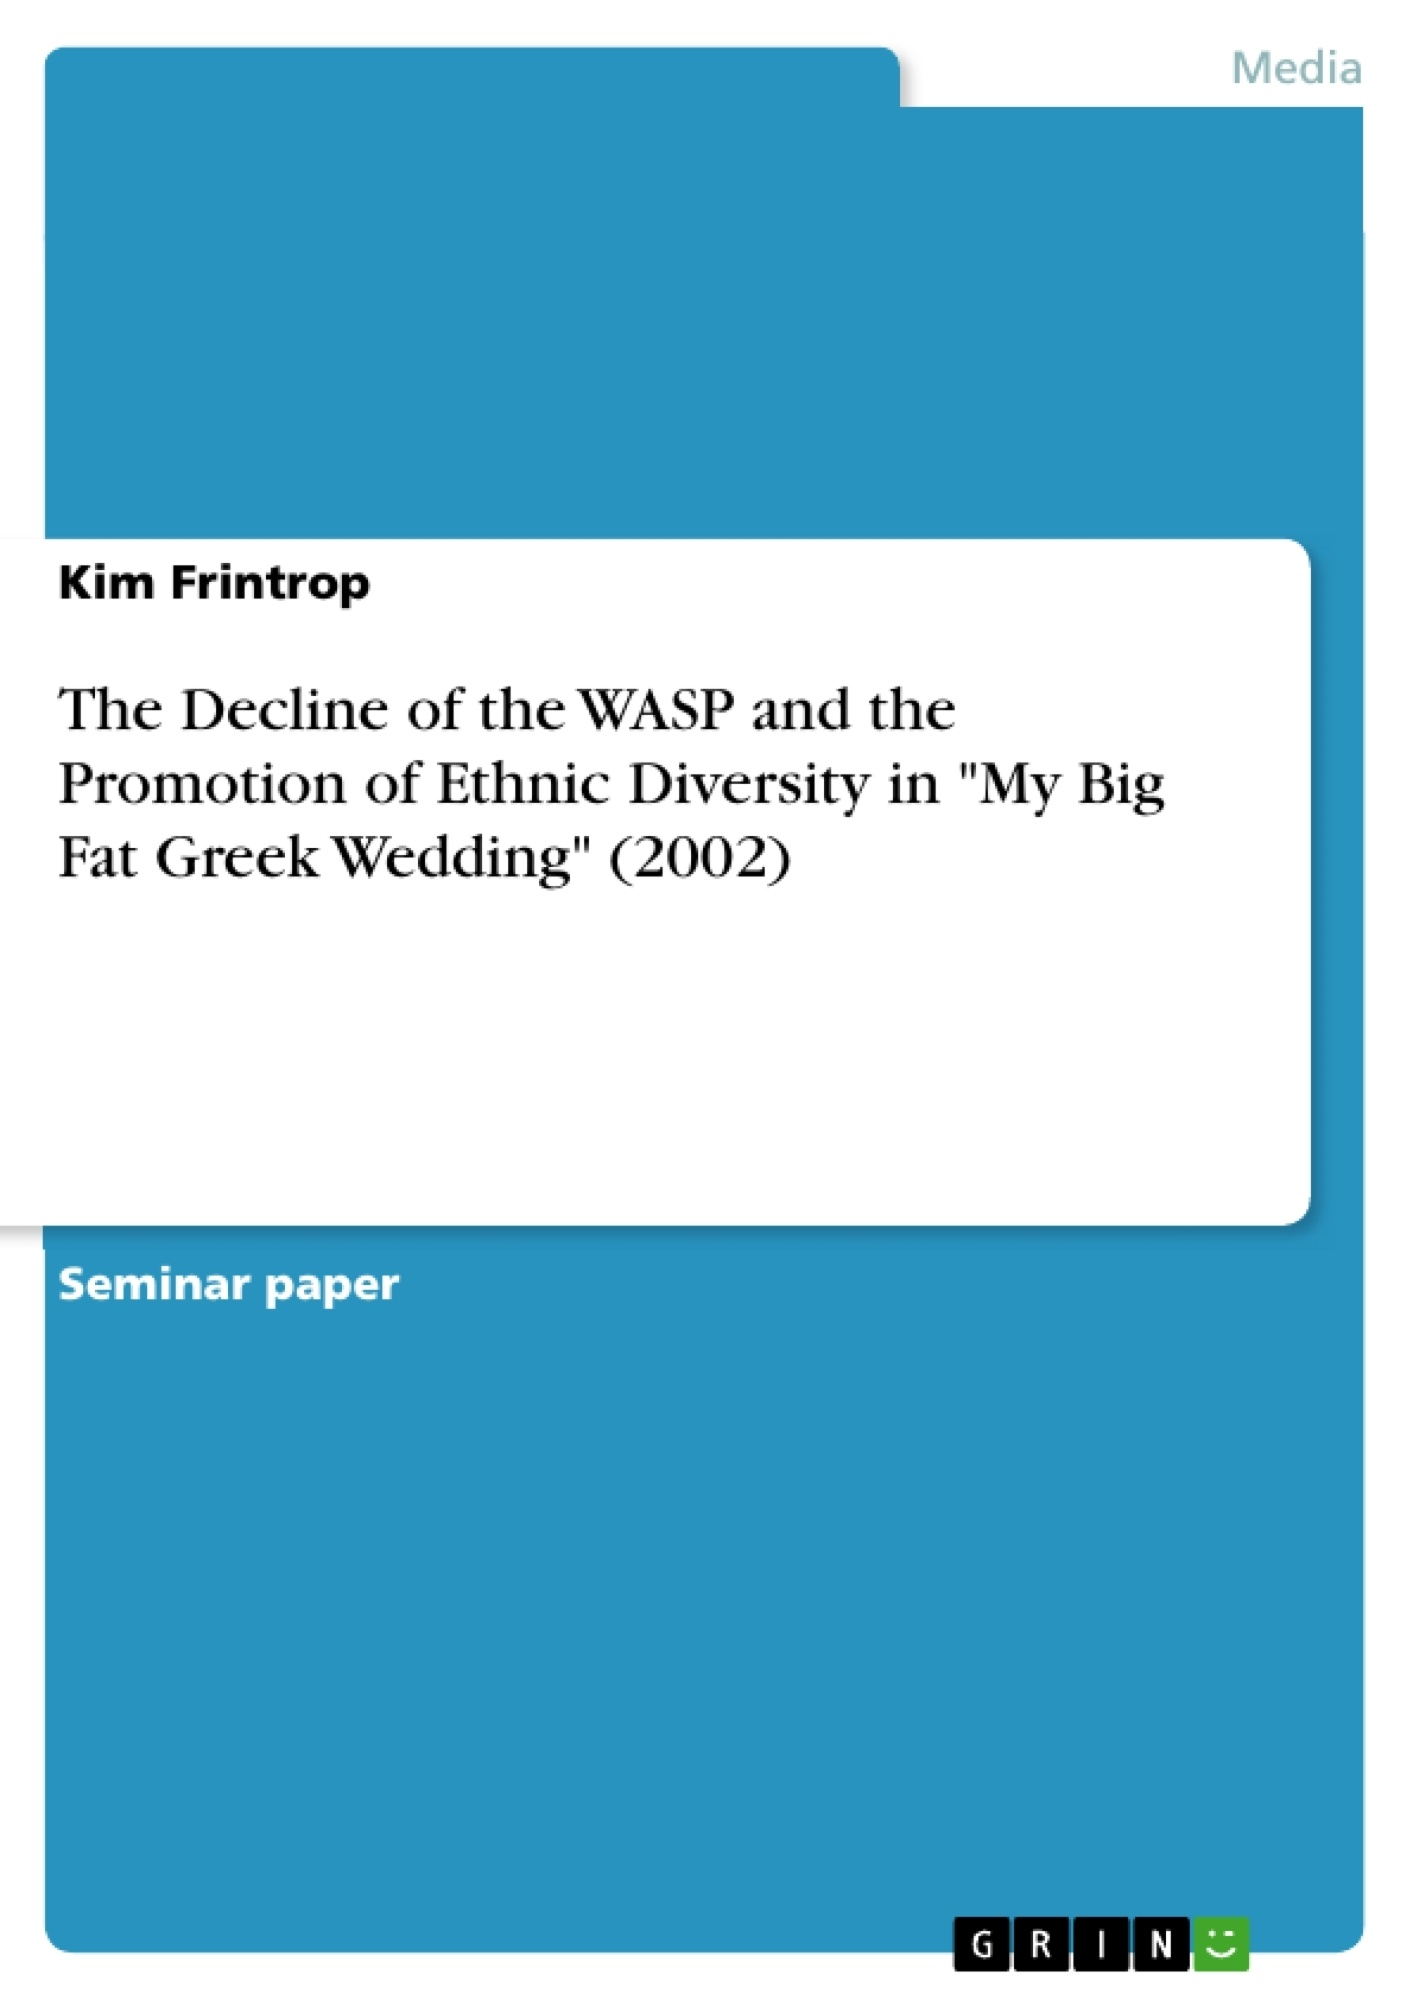 """Title: The Decline of the WASP and the Promotion of Ethnic Diversity in """"My Big Fat Greek Wedding"""" (2002)"""